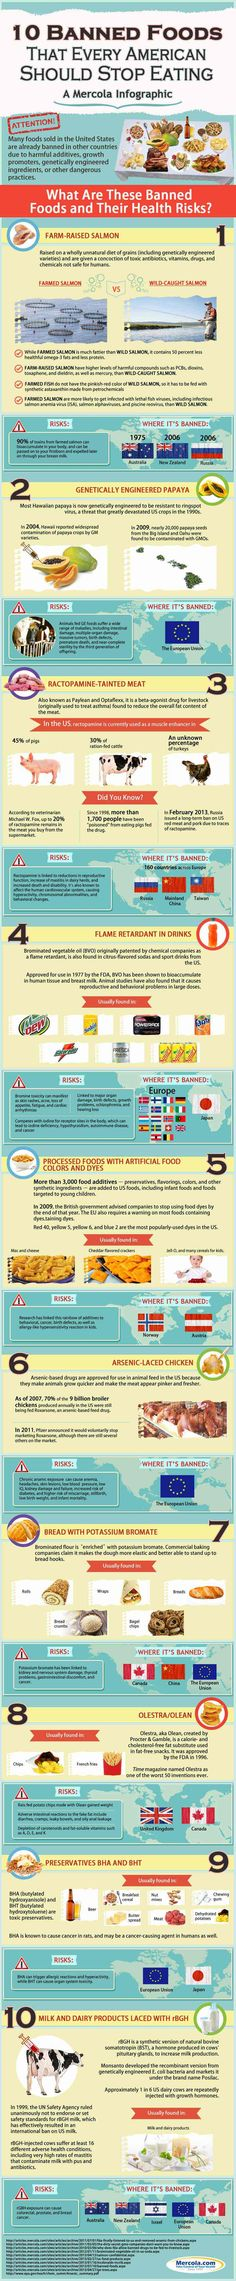 "Are you eating food that's already banned in other countries but is still allowed to poison and kill Americans? Learn these pernicious ingredients and common foods through this infographic. Use the embed code to share it on your website. <img src=""http://media.mercola.com/assets/images/infographic/banned-foods-infographic.jpg"" alt=""10 Banned Foods to Avoid"" border=""0"" style=""max-width:100%; min-width:300px; margin: 0 auto 20px auto; display:block;""><p …"